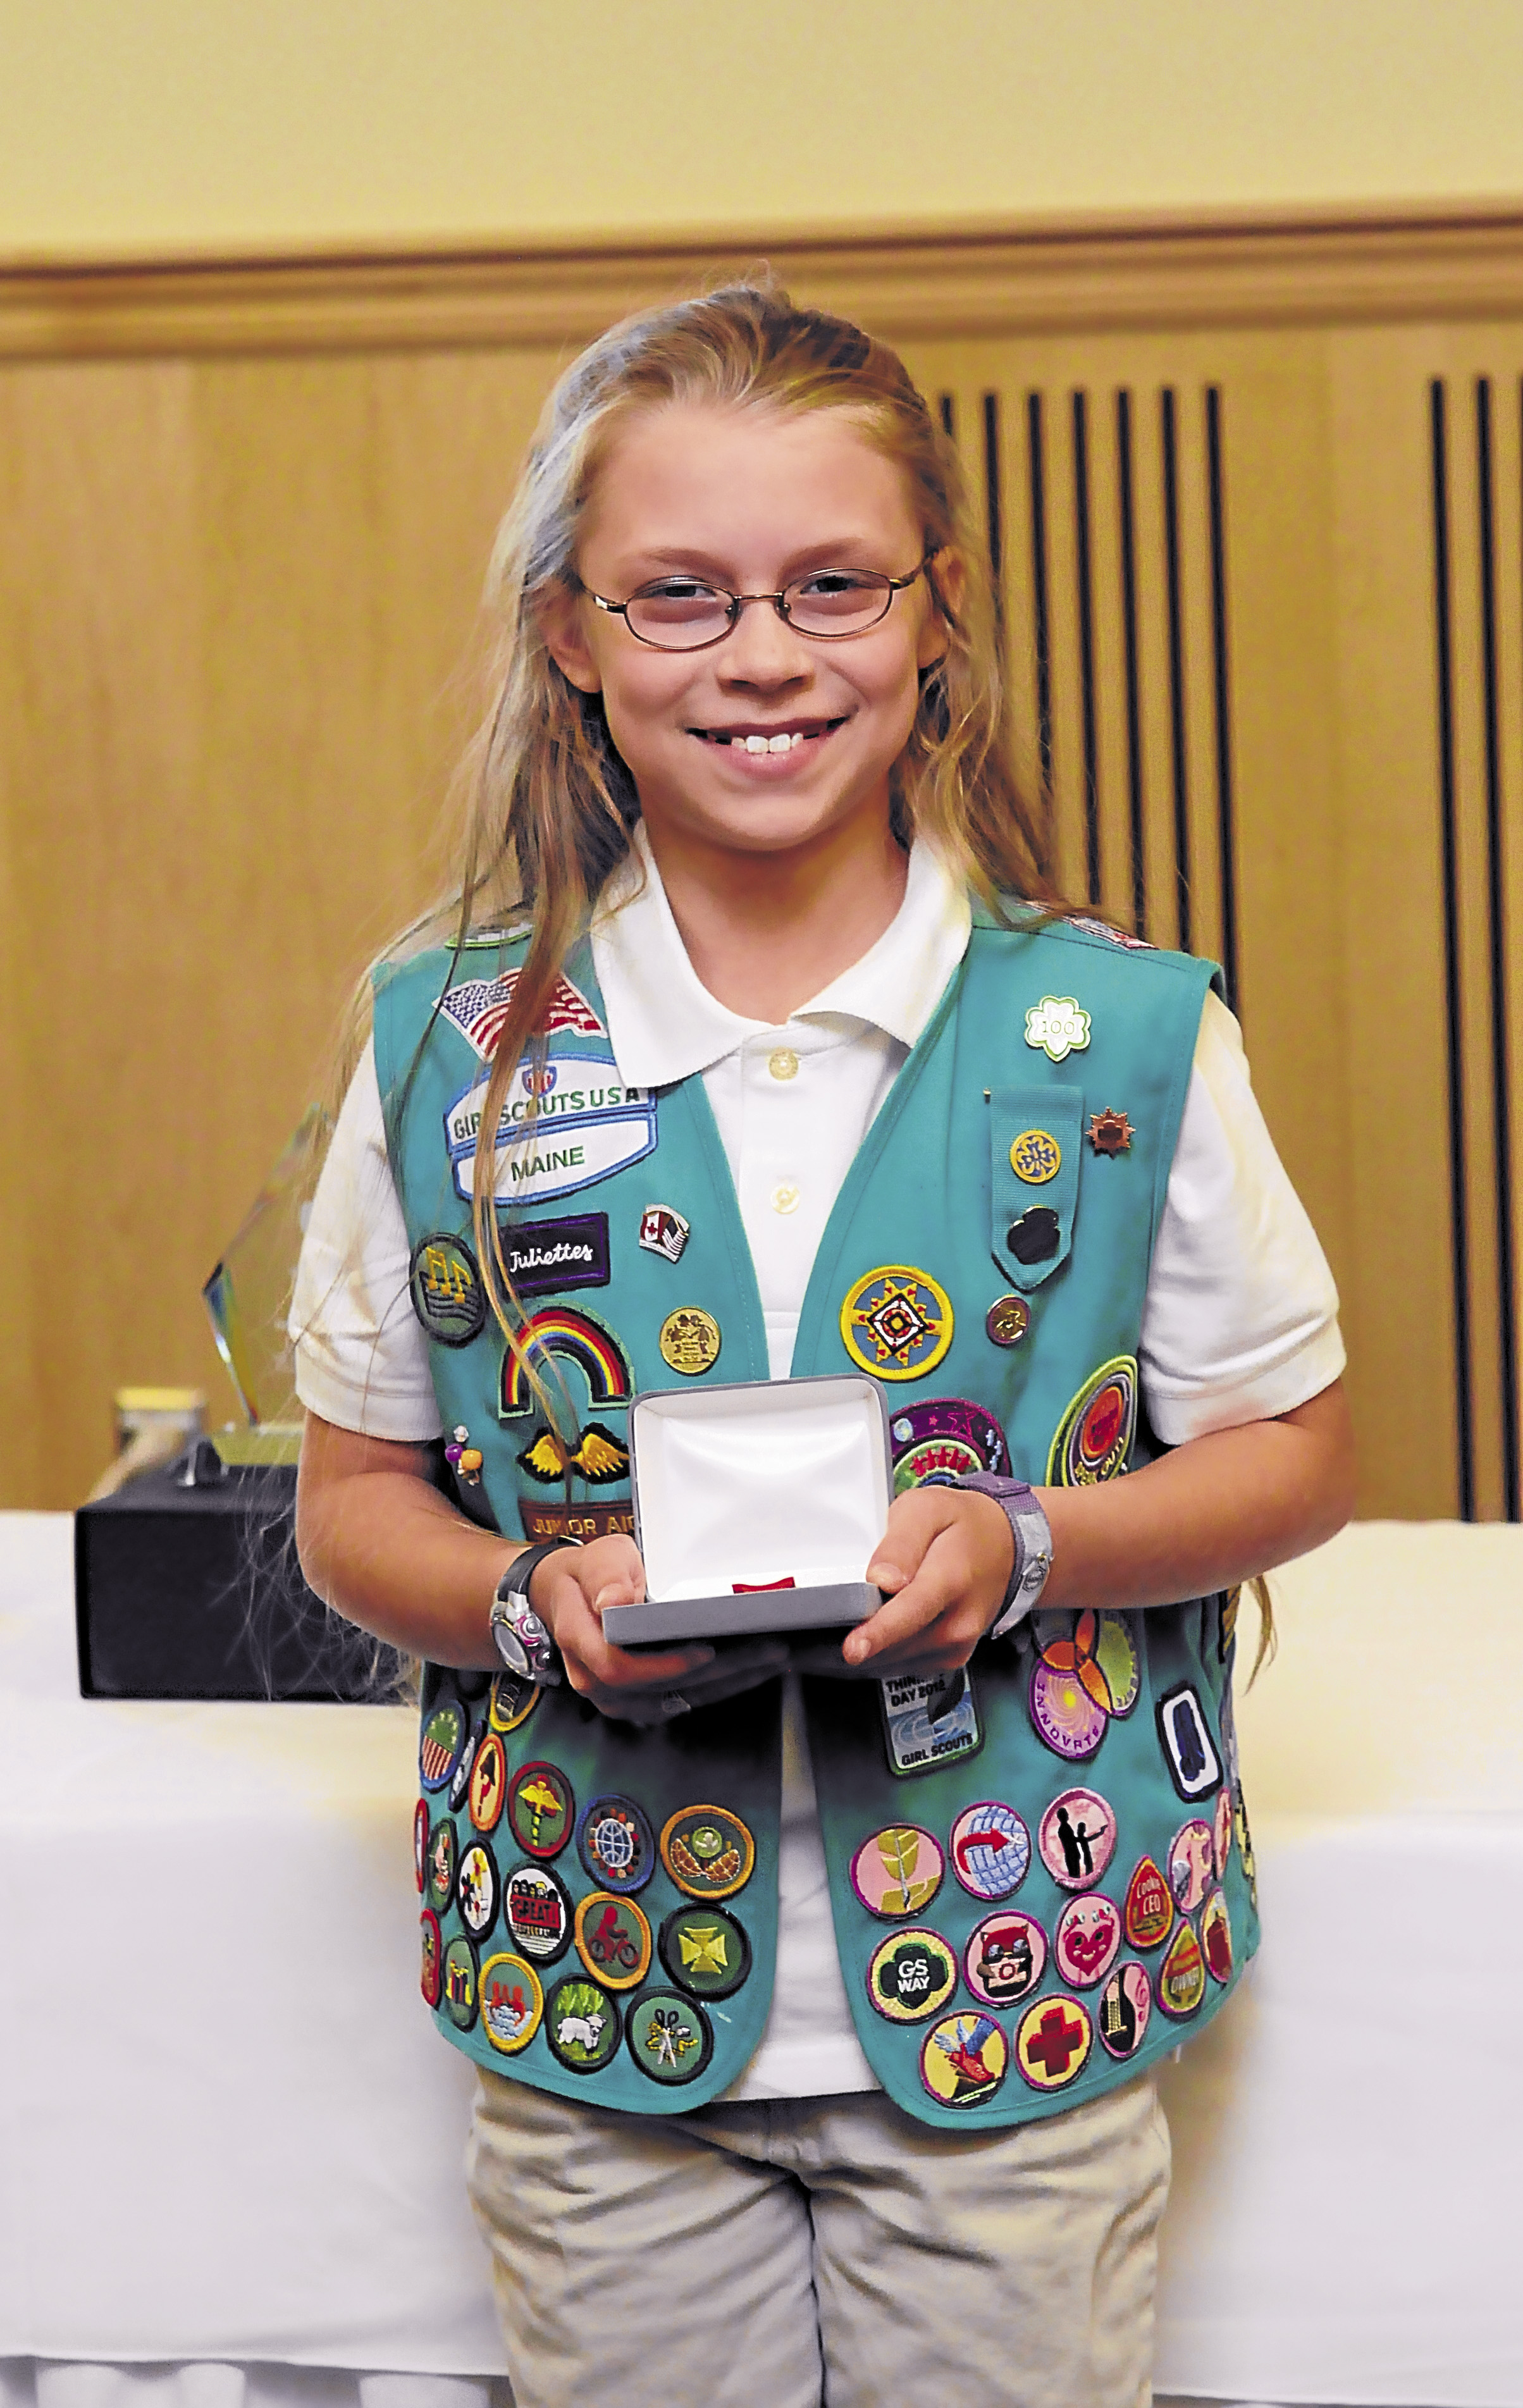 Ten-year-old Samantha Moore from Milbridge was the recipient of the Girl Scout Medal of Honor for her lifesaving skills.